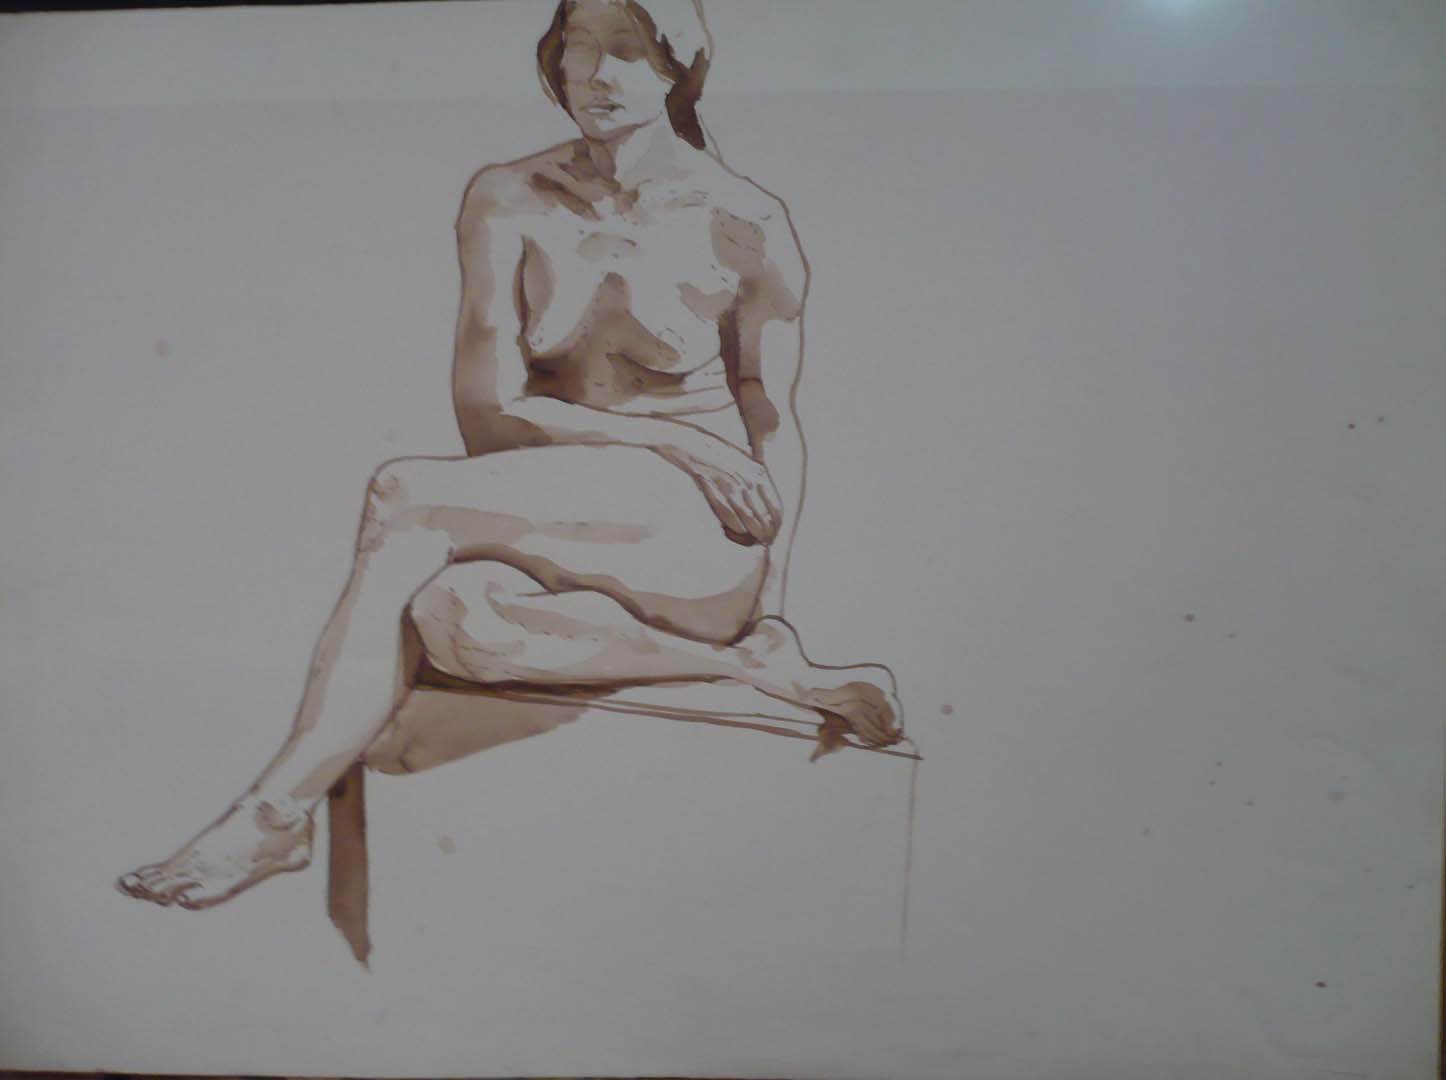 "Female Sitting with Legs Crossed Sepia 22"" x 30"""